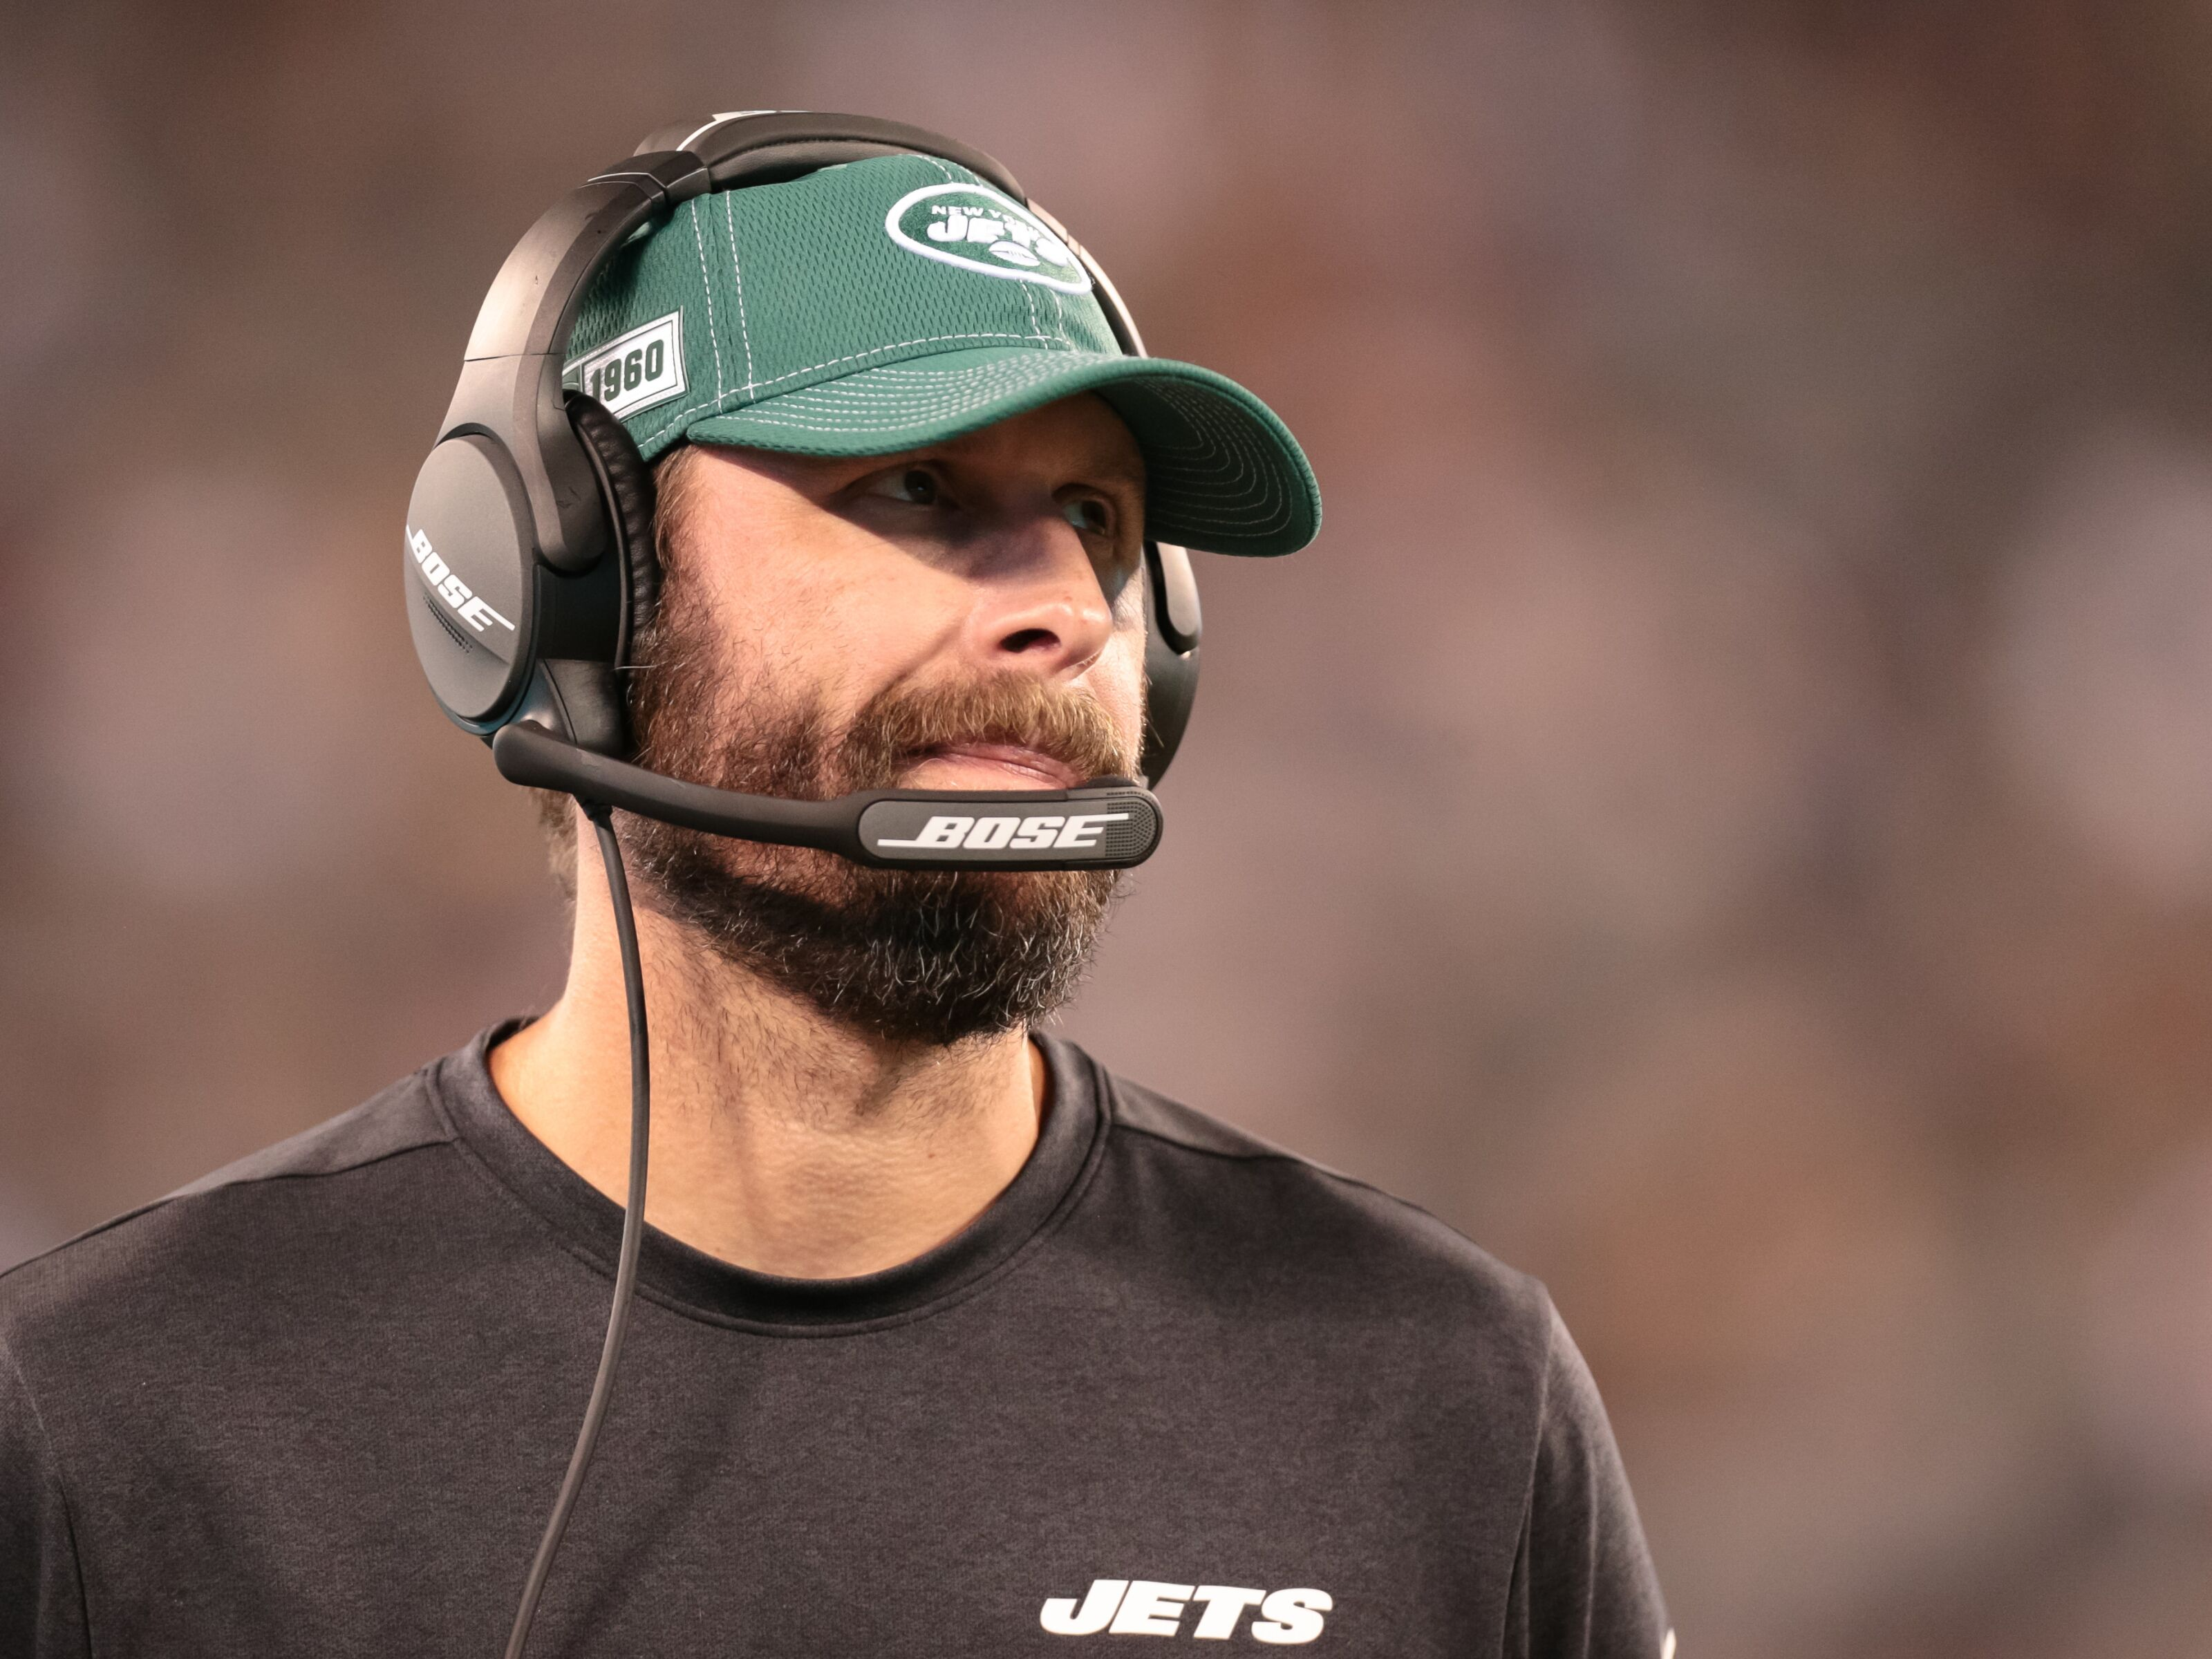 Jets' fans are going to turn on Adam Gase